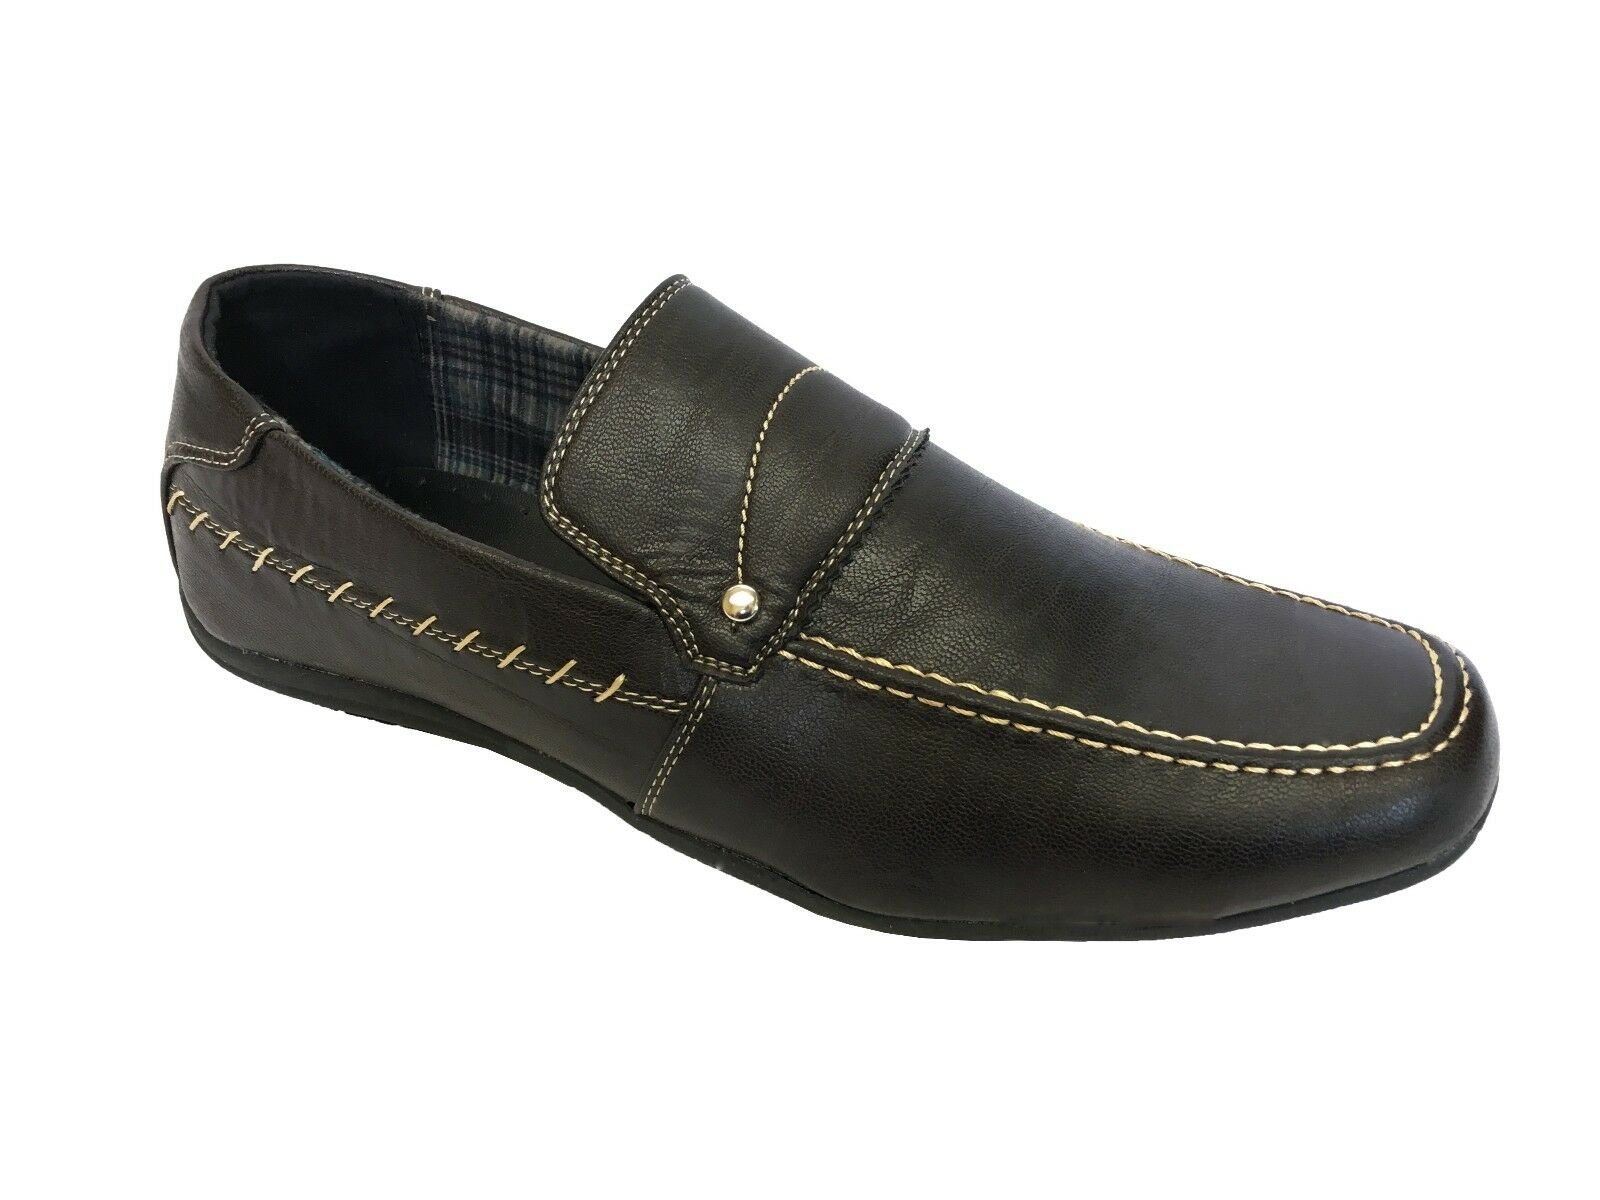 Mens Italian Slip On Casual Moccasin Loafers Driving Black Shoes Smart UK Size Black Driving 7a49d8